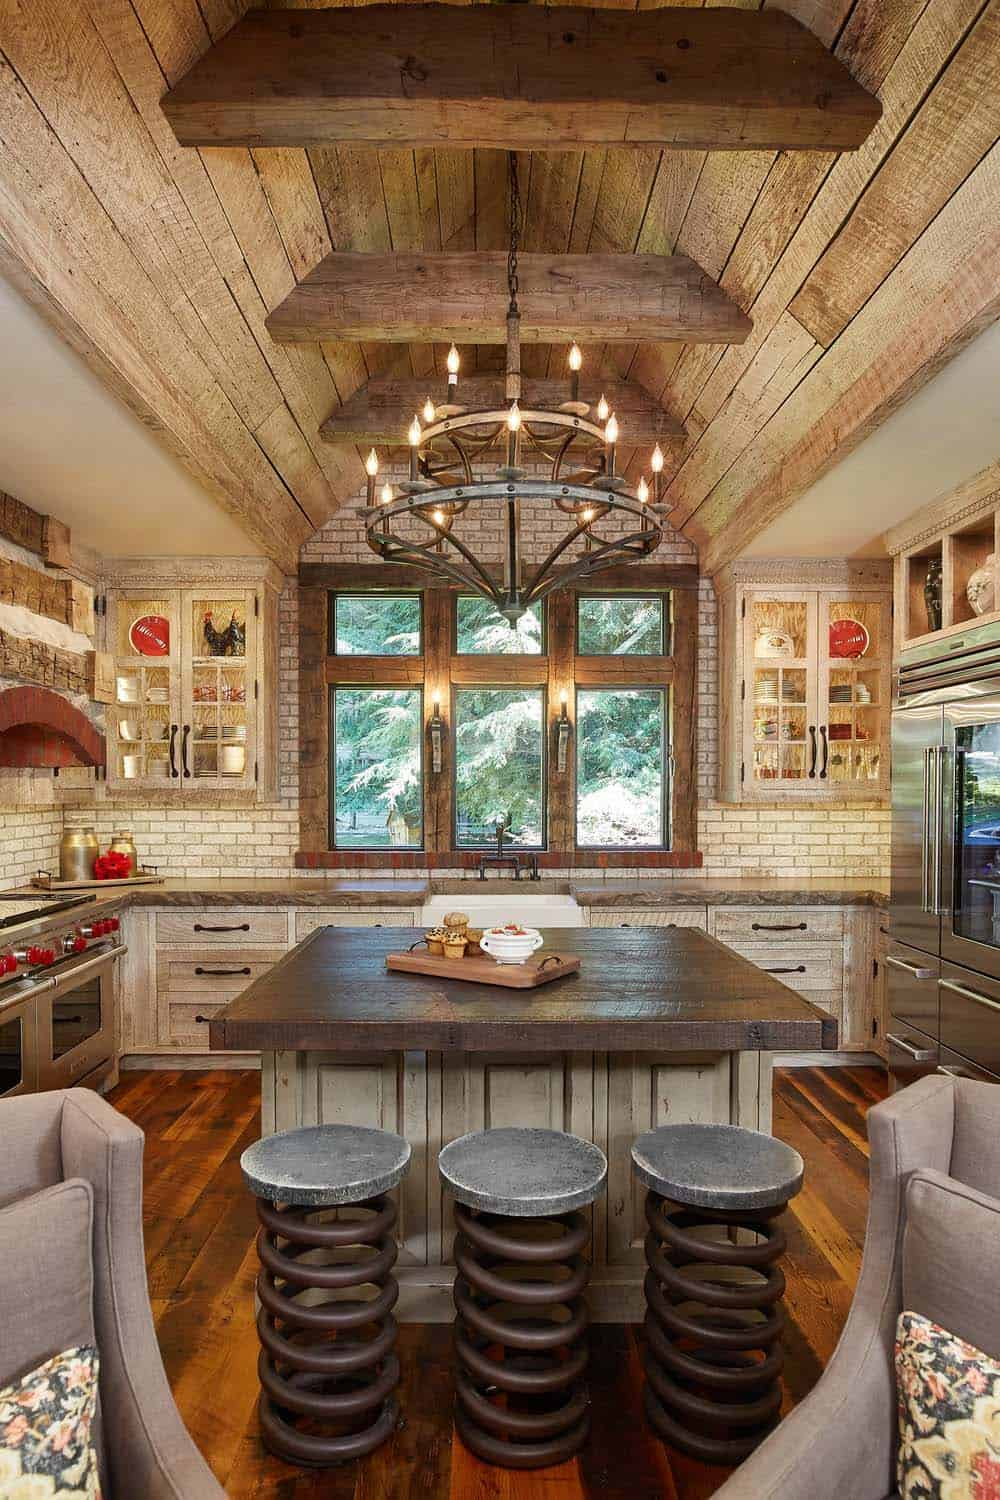 45 most pinteresting kitchens featured on 1 kindesign for 2016 - Home decor interior design ...